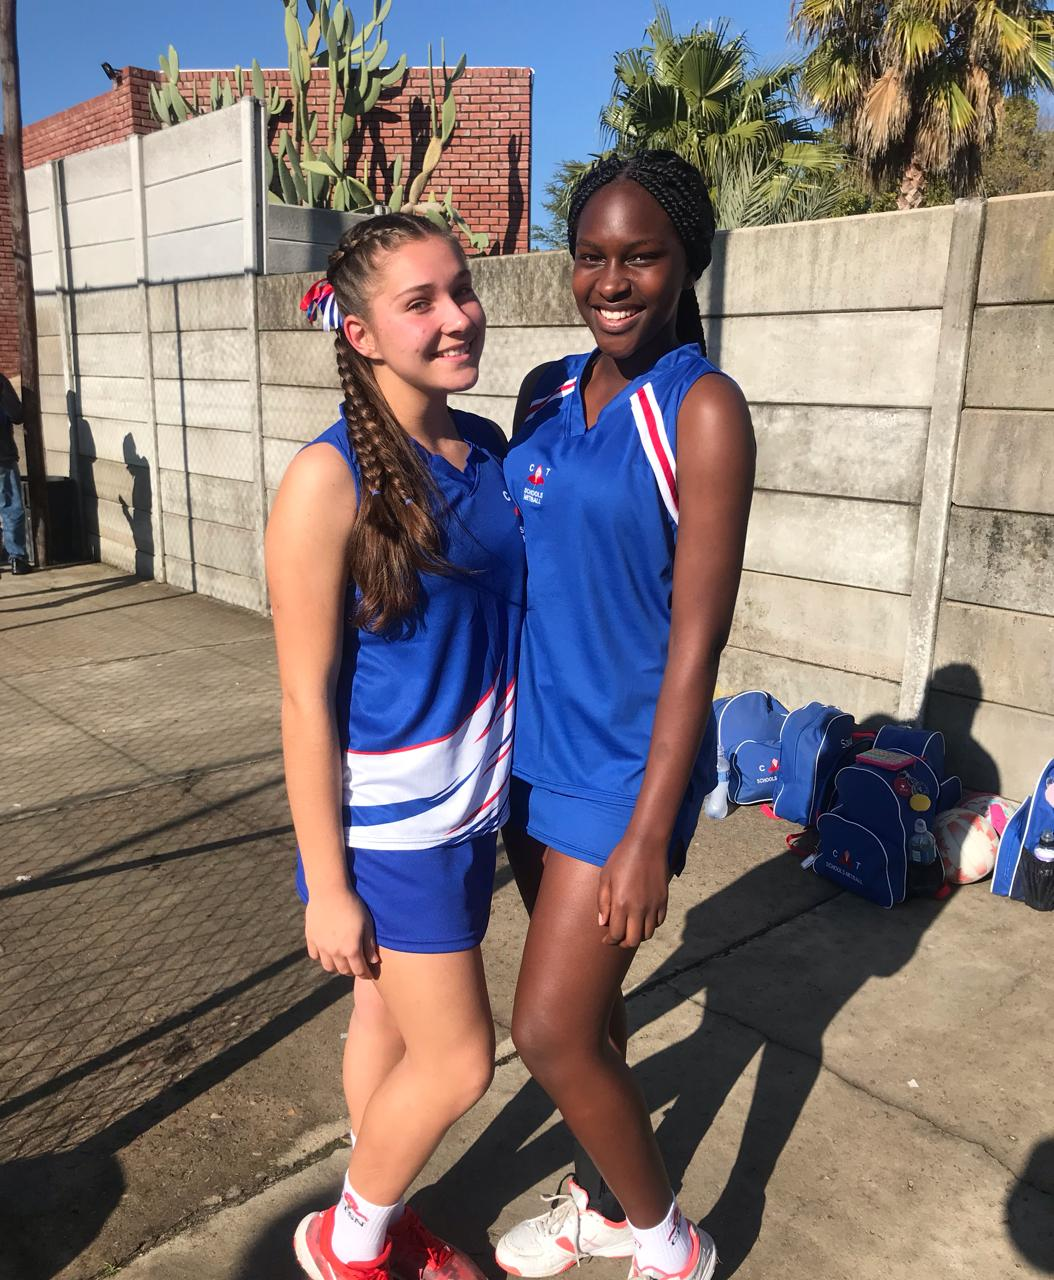 EHS netballs girls selected to represent WP netball